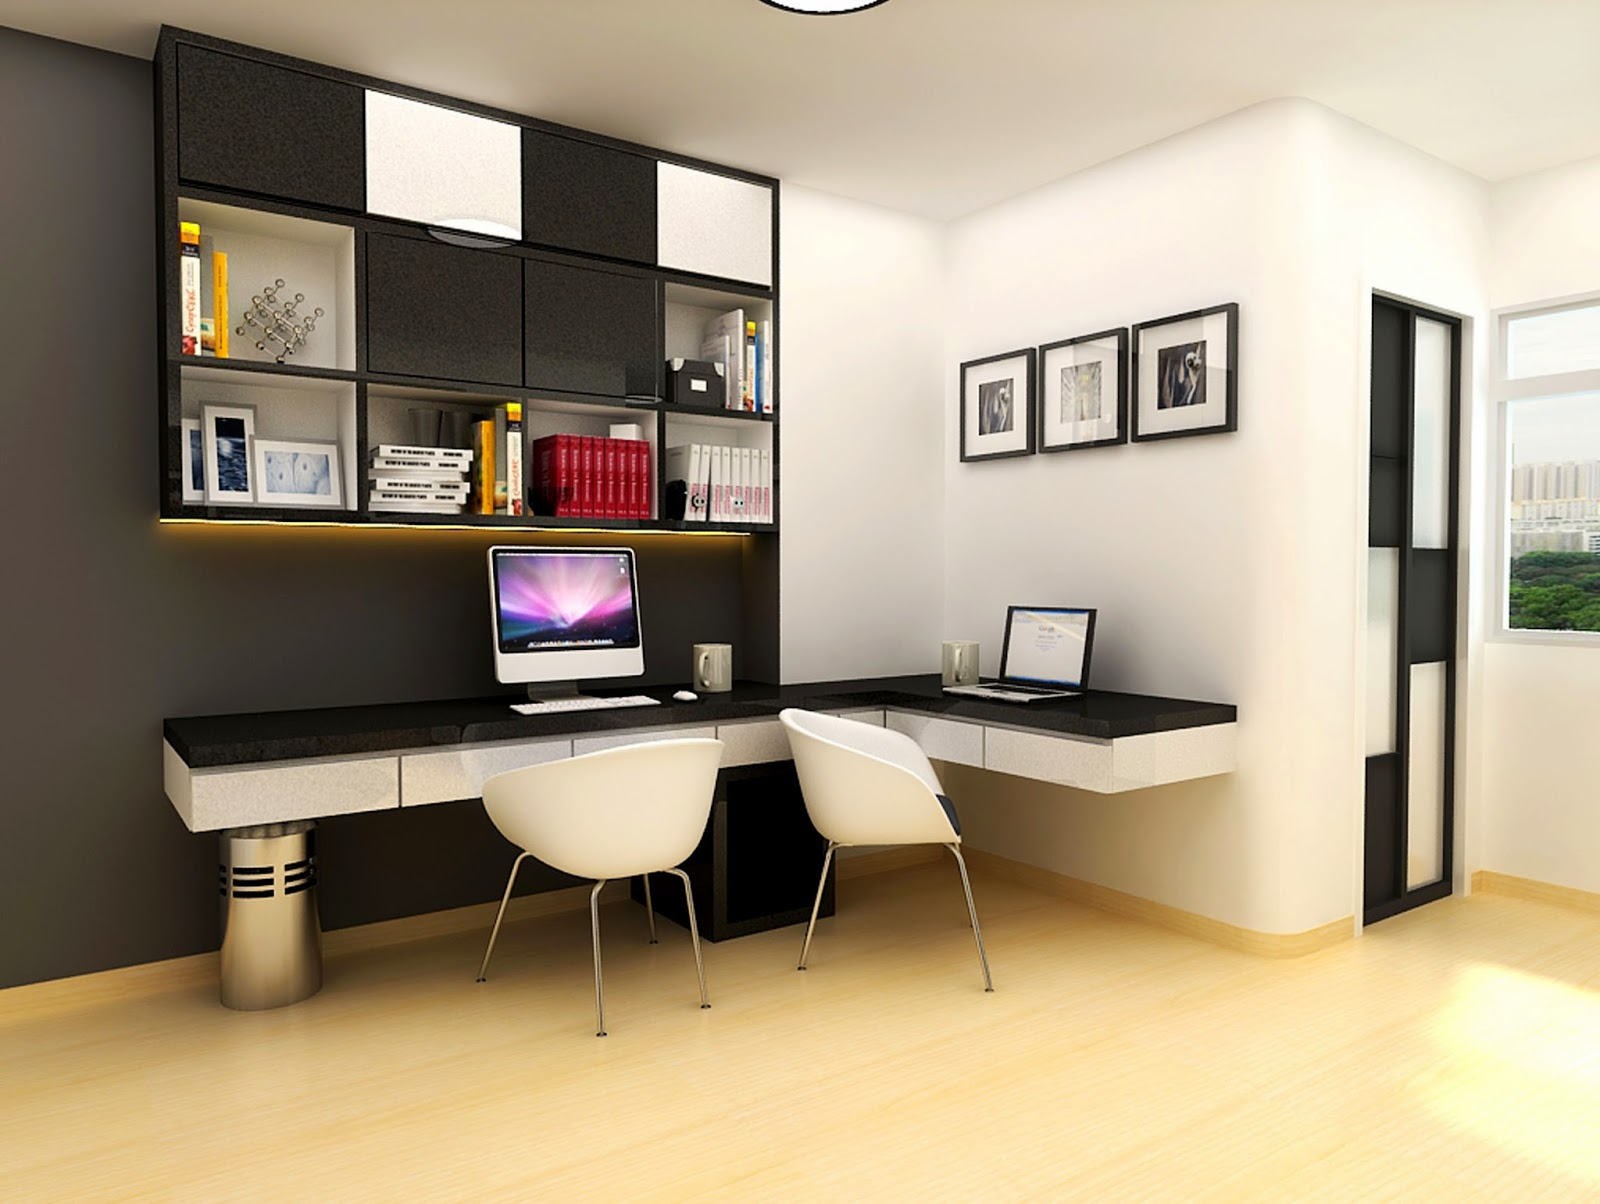 Best Study Room Design : Decorating A Study Room In Your Home - A Room For Everyone